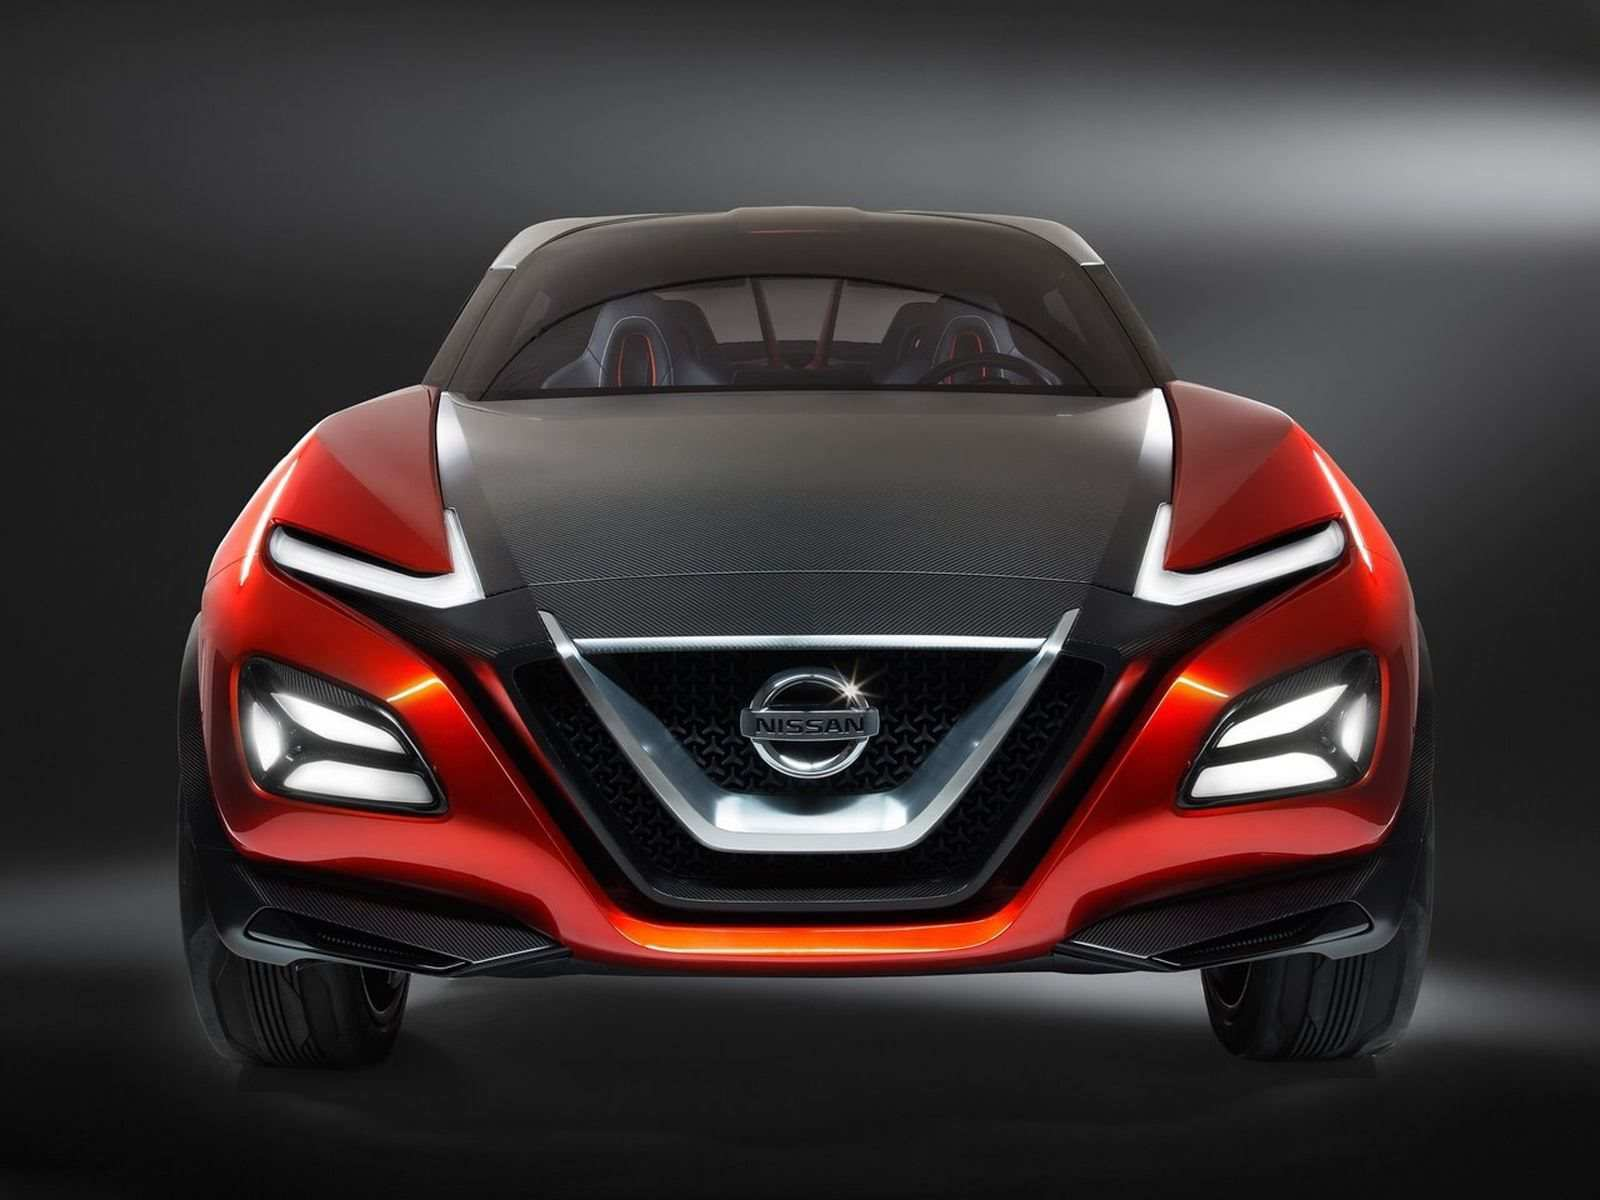 57 Great Nissan New Z 2020 Prices with Nissan New Z 2020